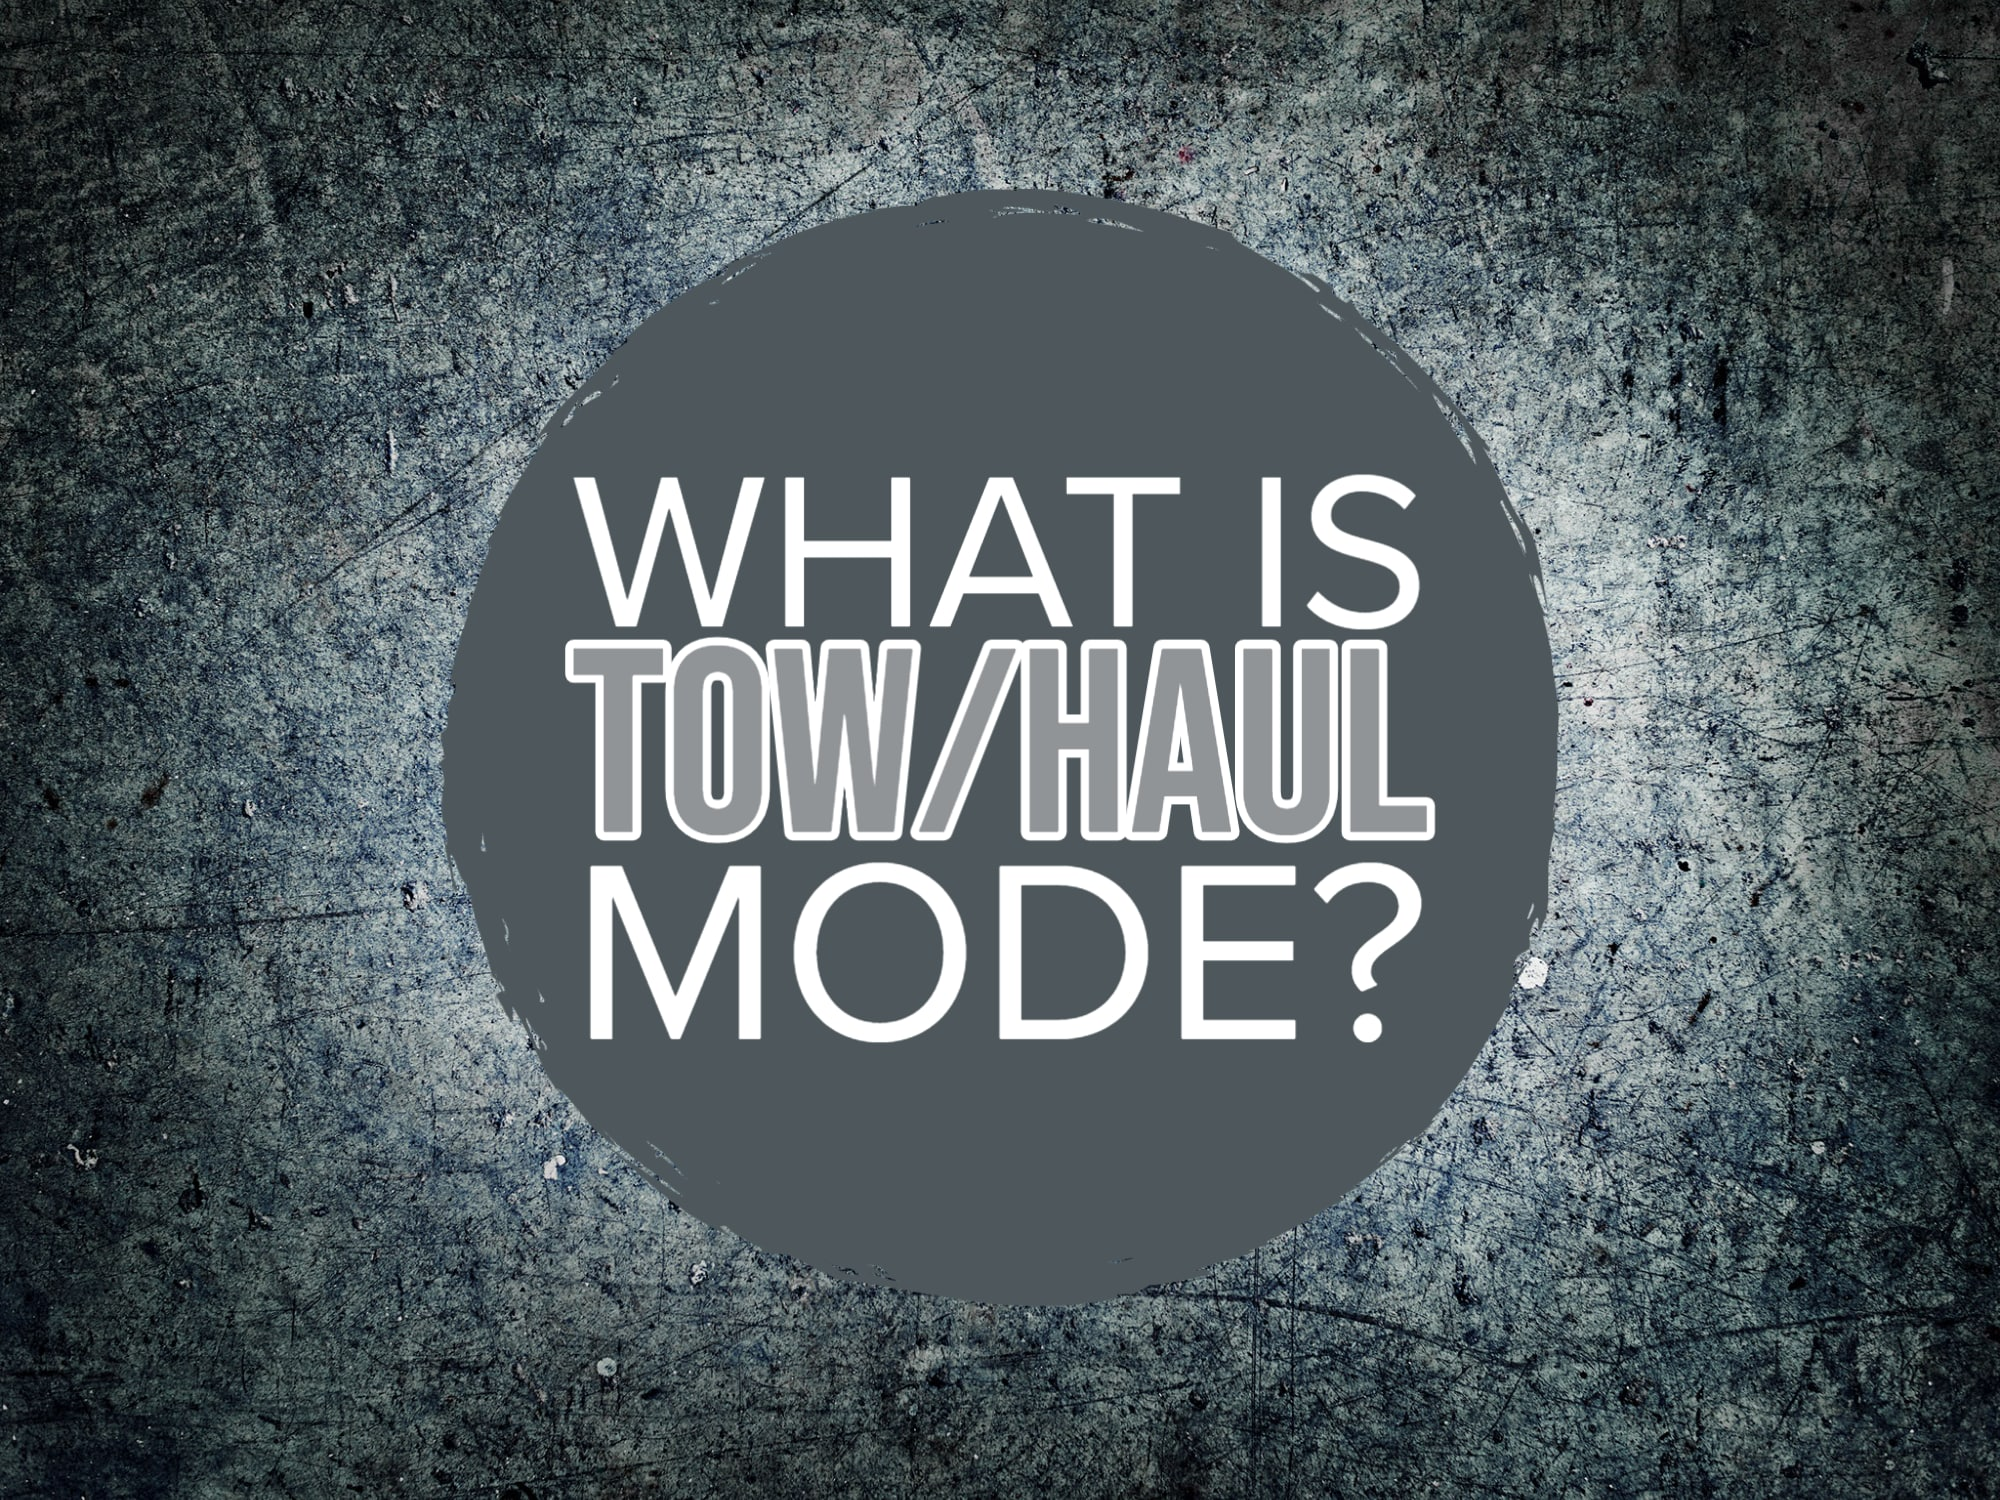 """Grunge background with gray circle in middle with words """"What is Tow/Haul mode?"""""""